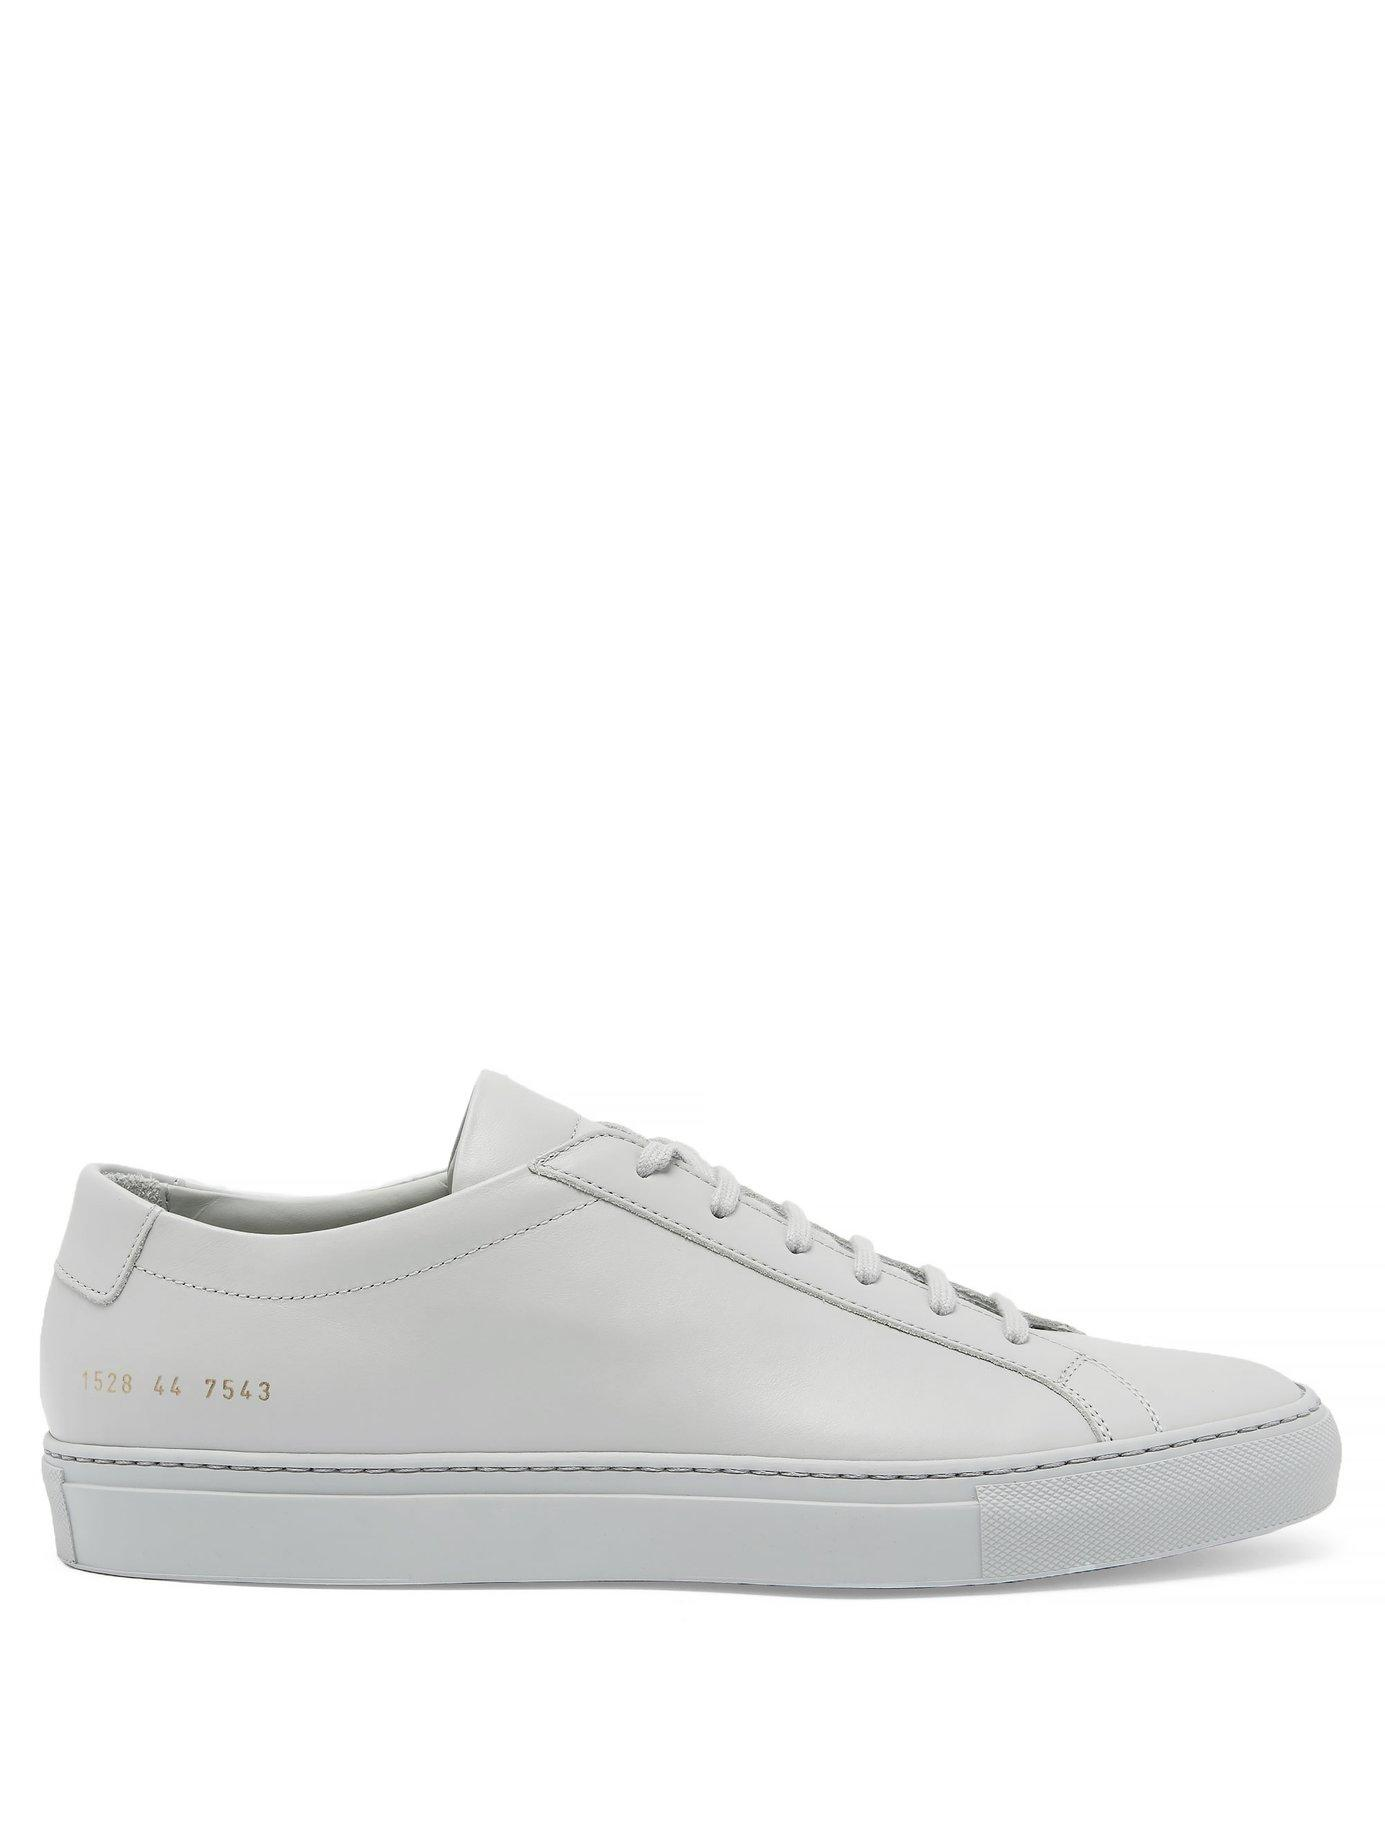 2a5728b937fbe Lyst - Common Projects Original Achilles Low-top Nubuck Sneakers in ...